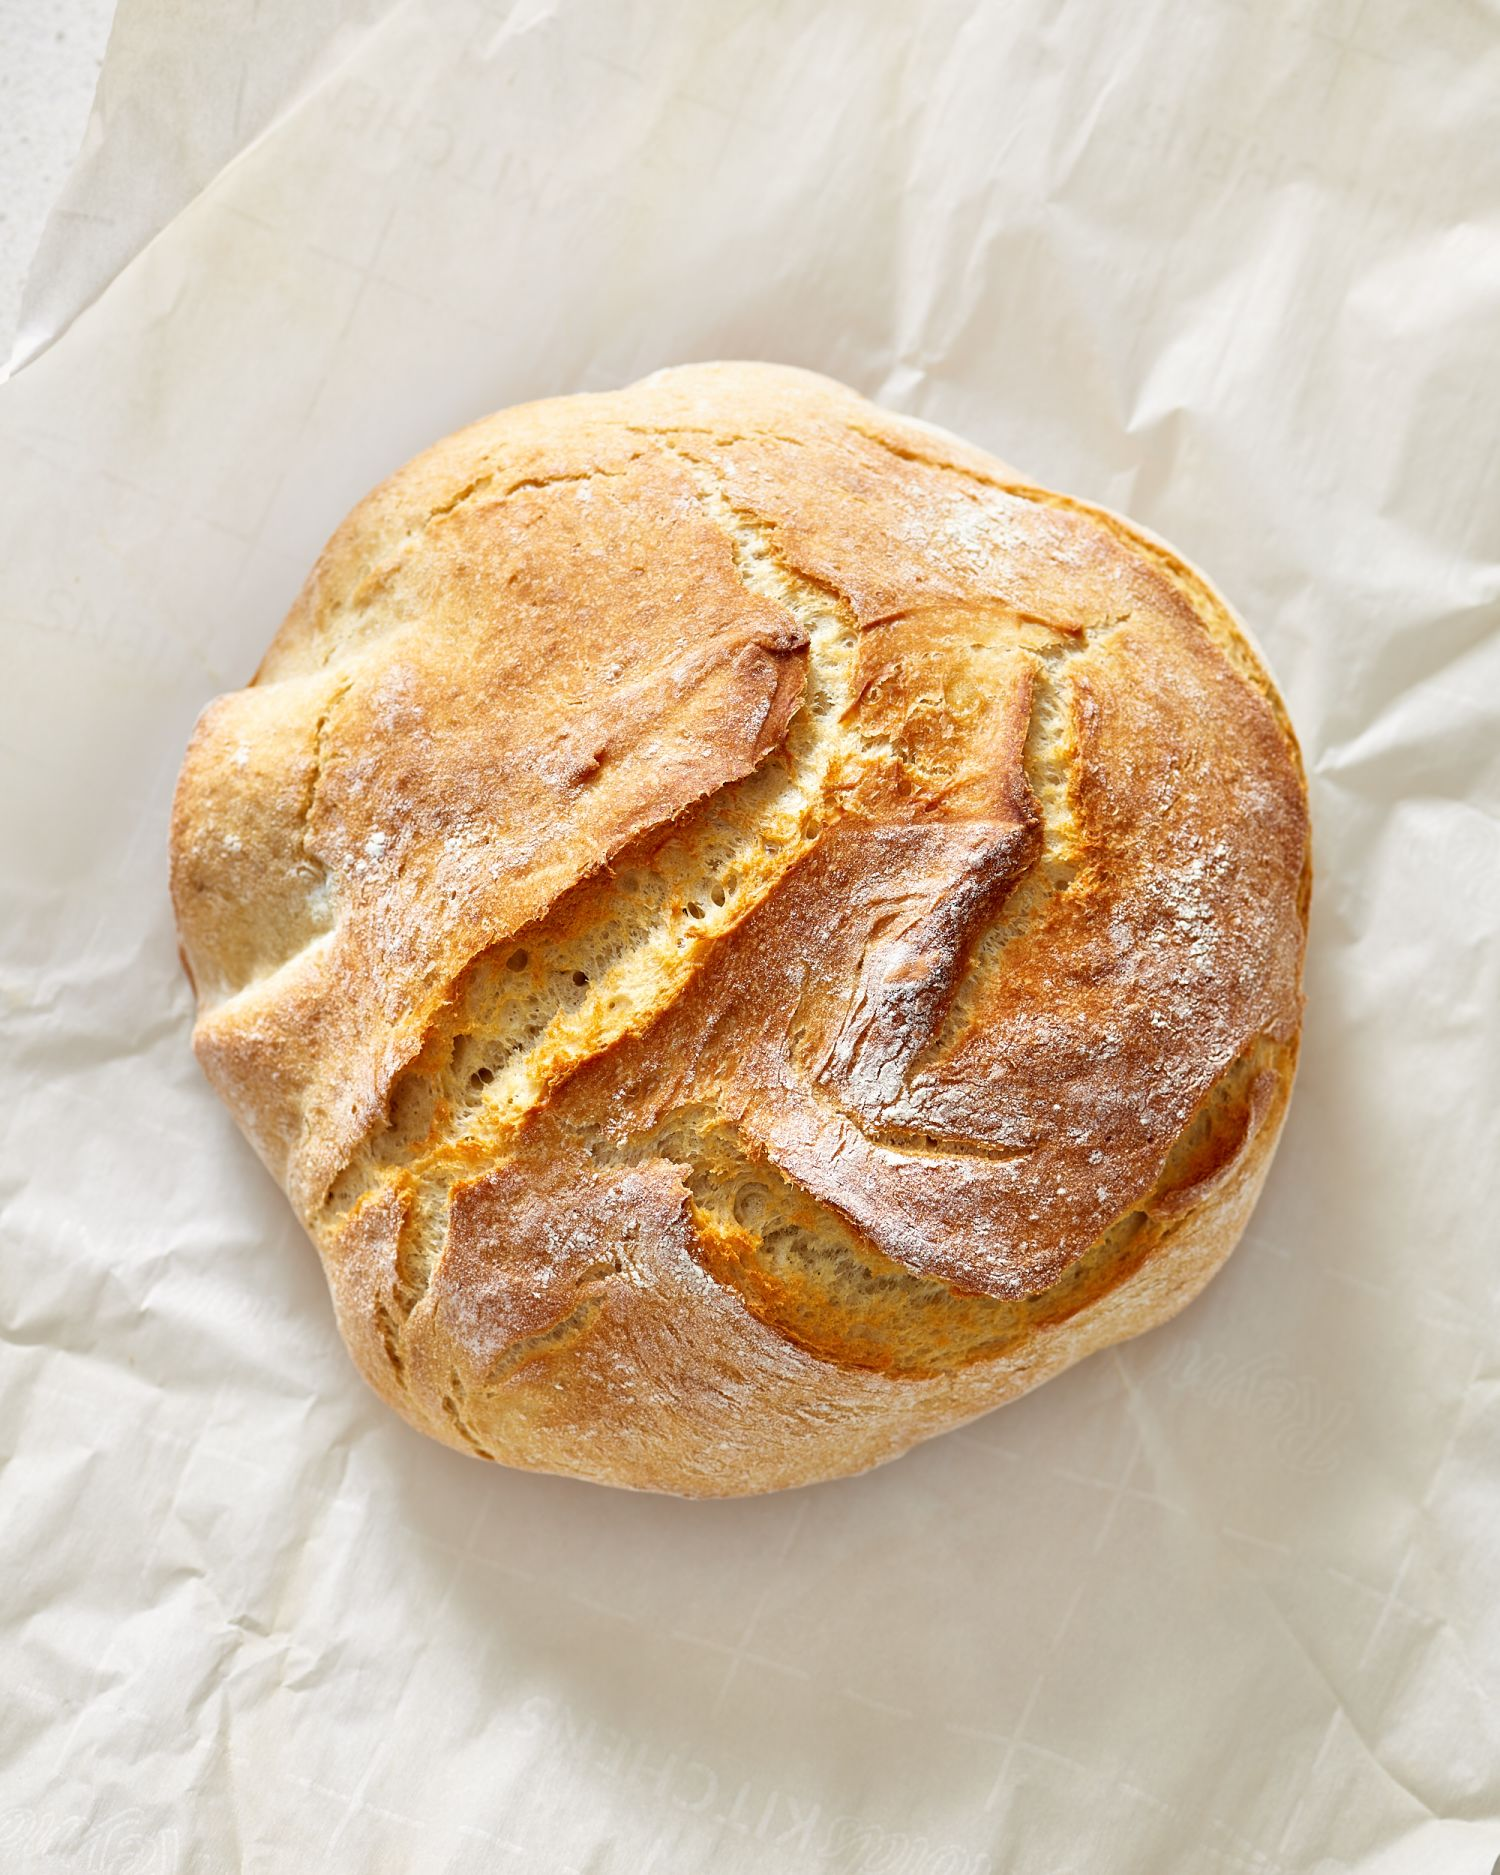 Baking Bread at Home Is Easier than You Might Think